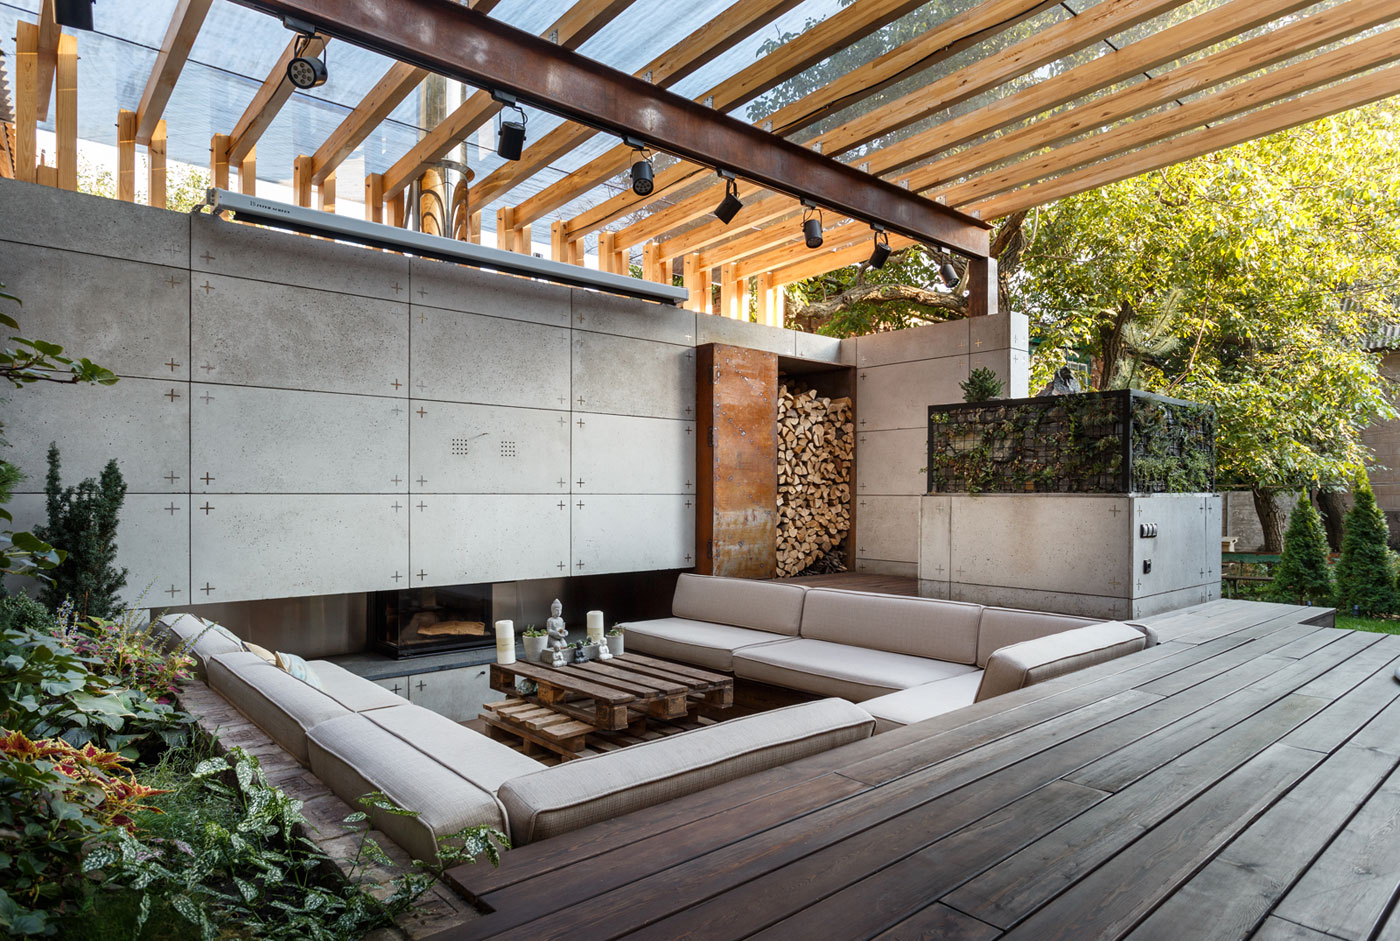 Contemporary Compact Courtyard of Lounge Zone by SVOYA studio-15